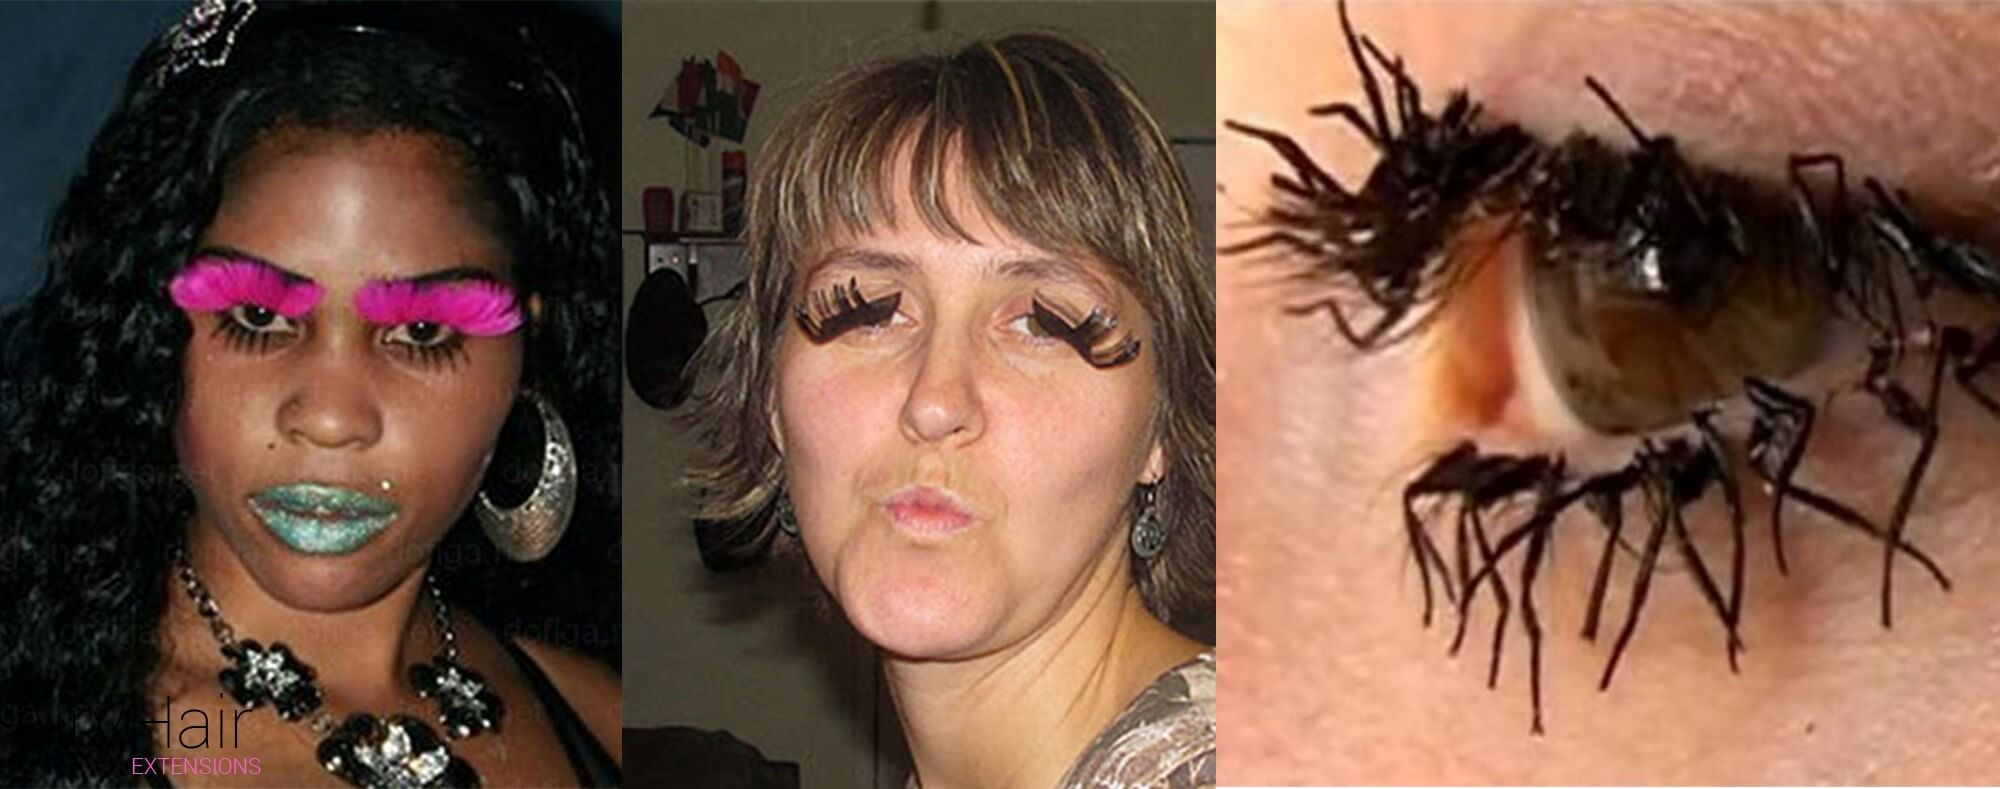 7 Worst Makeup And Beauty Fails Of All Time